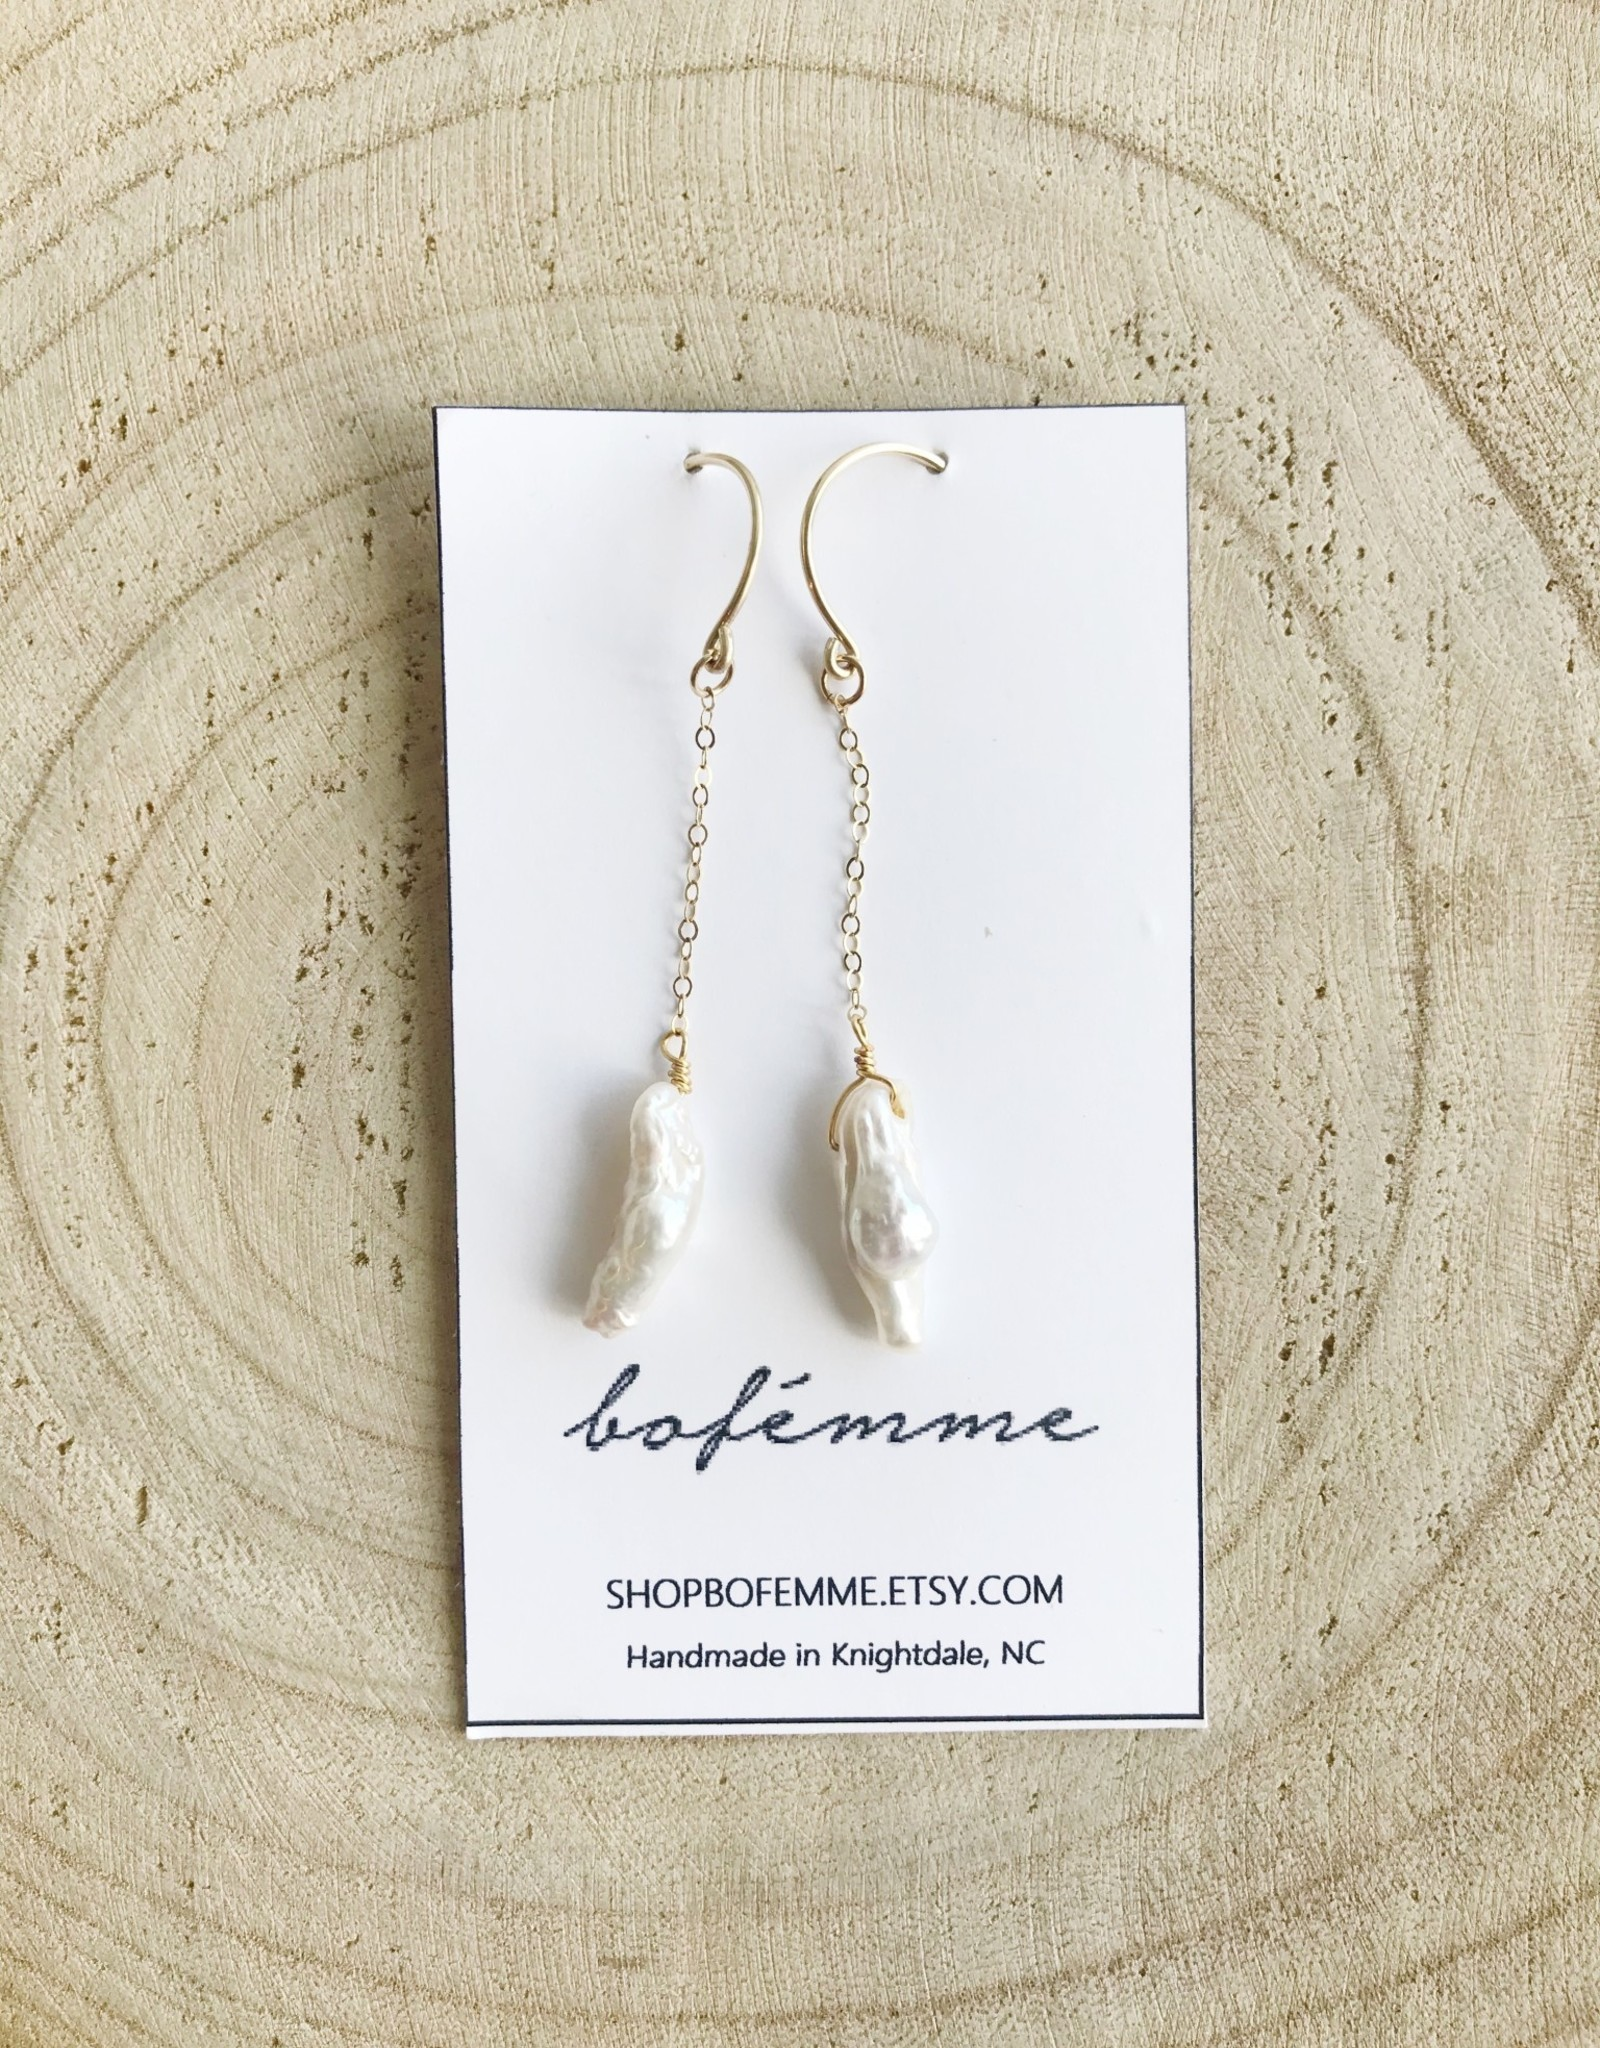 Bofemme Bofemme Baroque Drop Earrings